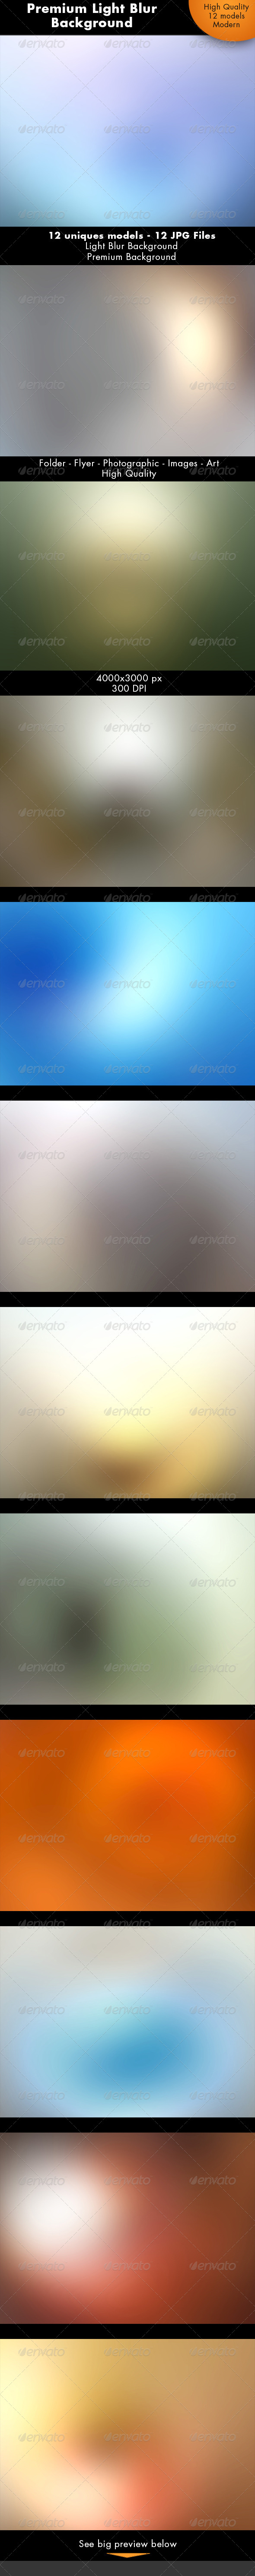 GraphicRiver Light Blur Background 7228573